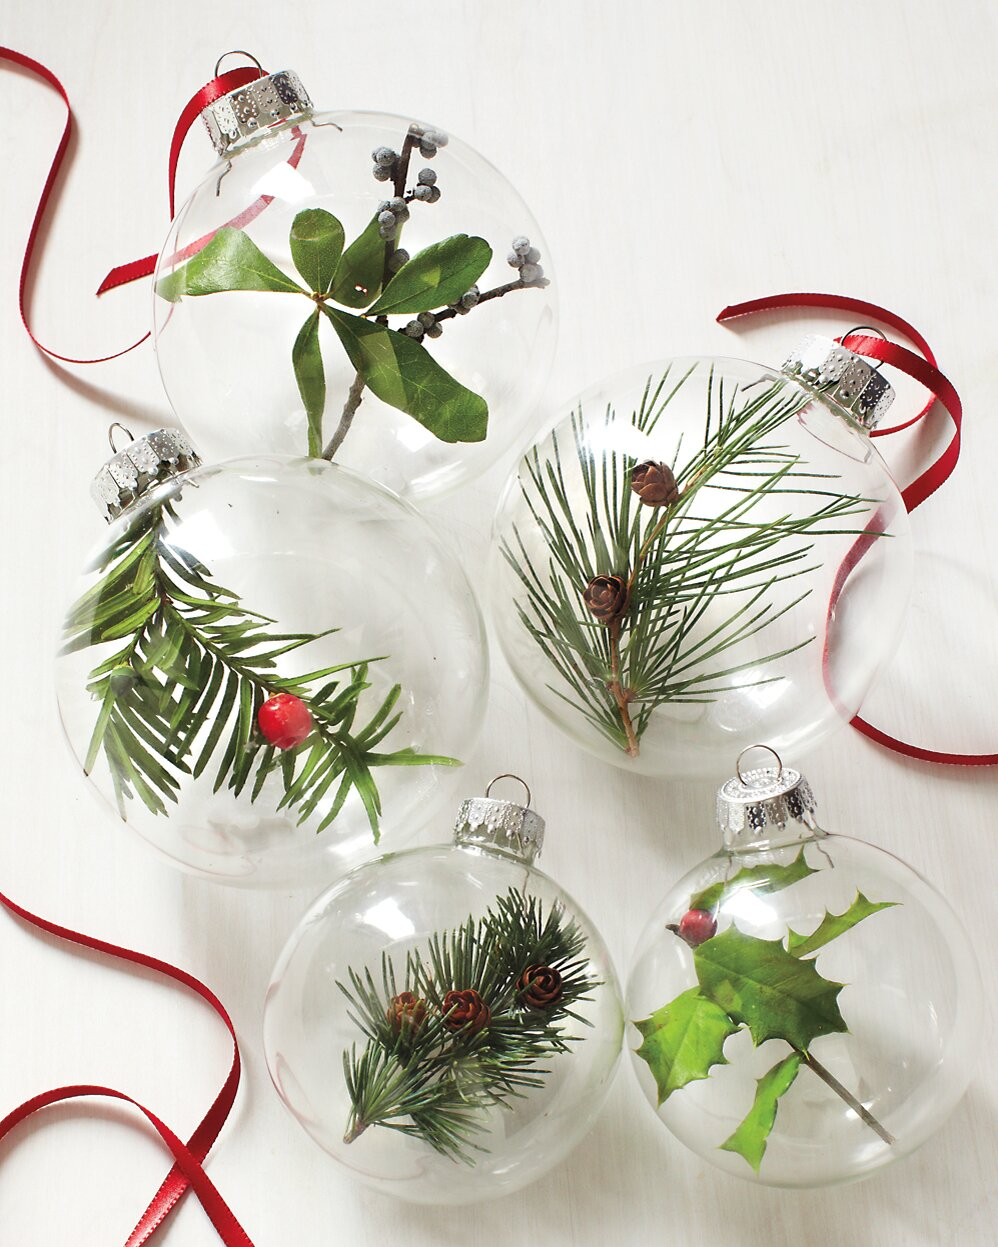 Christmas Ornaments Diy.Our Most Memorable Diy Christmas Ornament Projects Martha